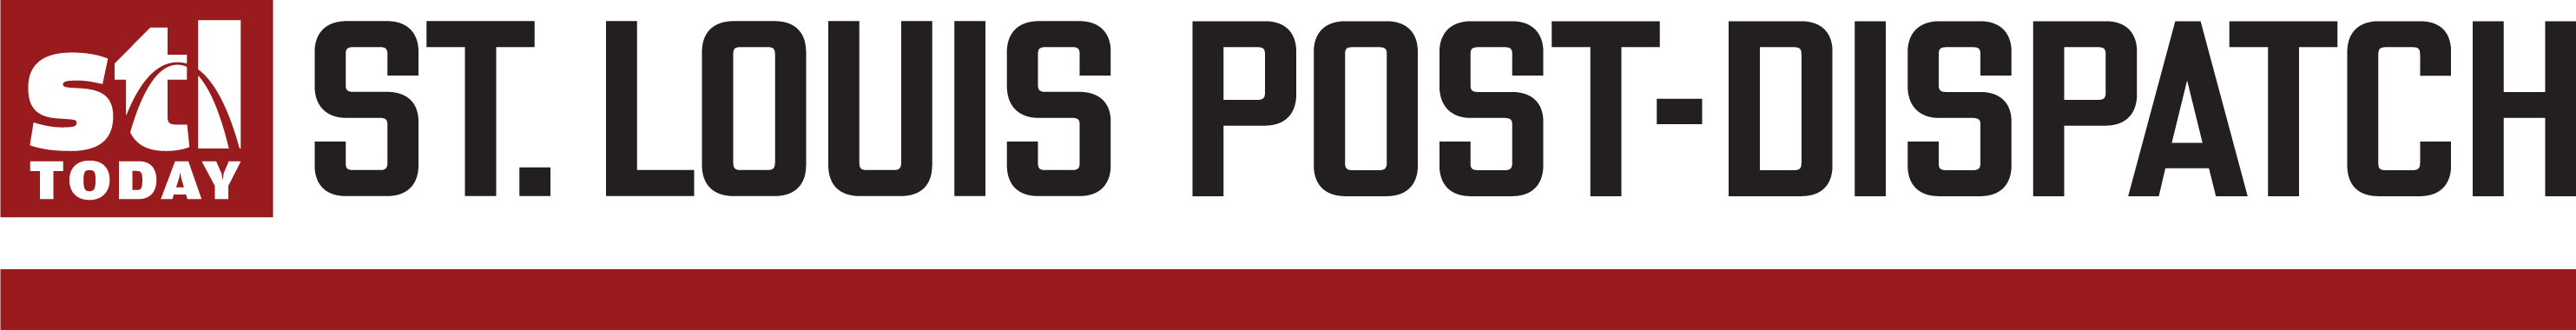 Image result for st. louis post dispatch logo